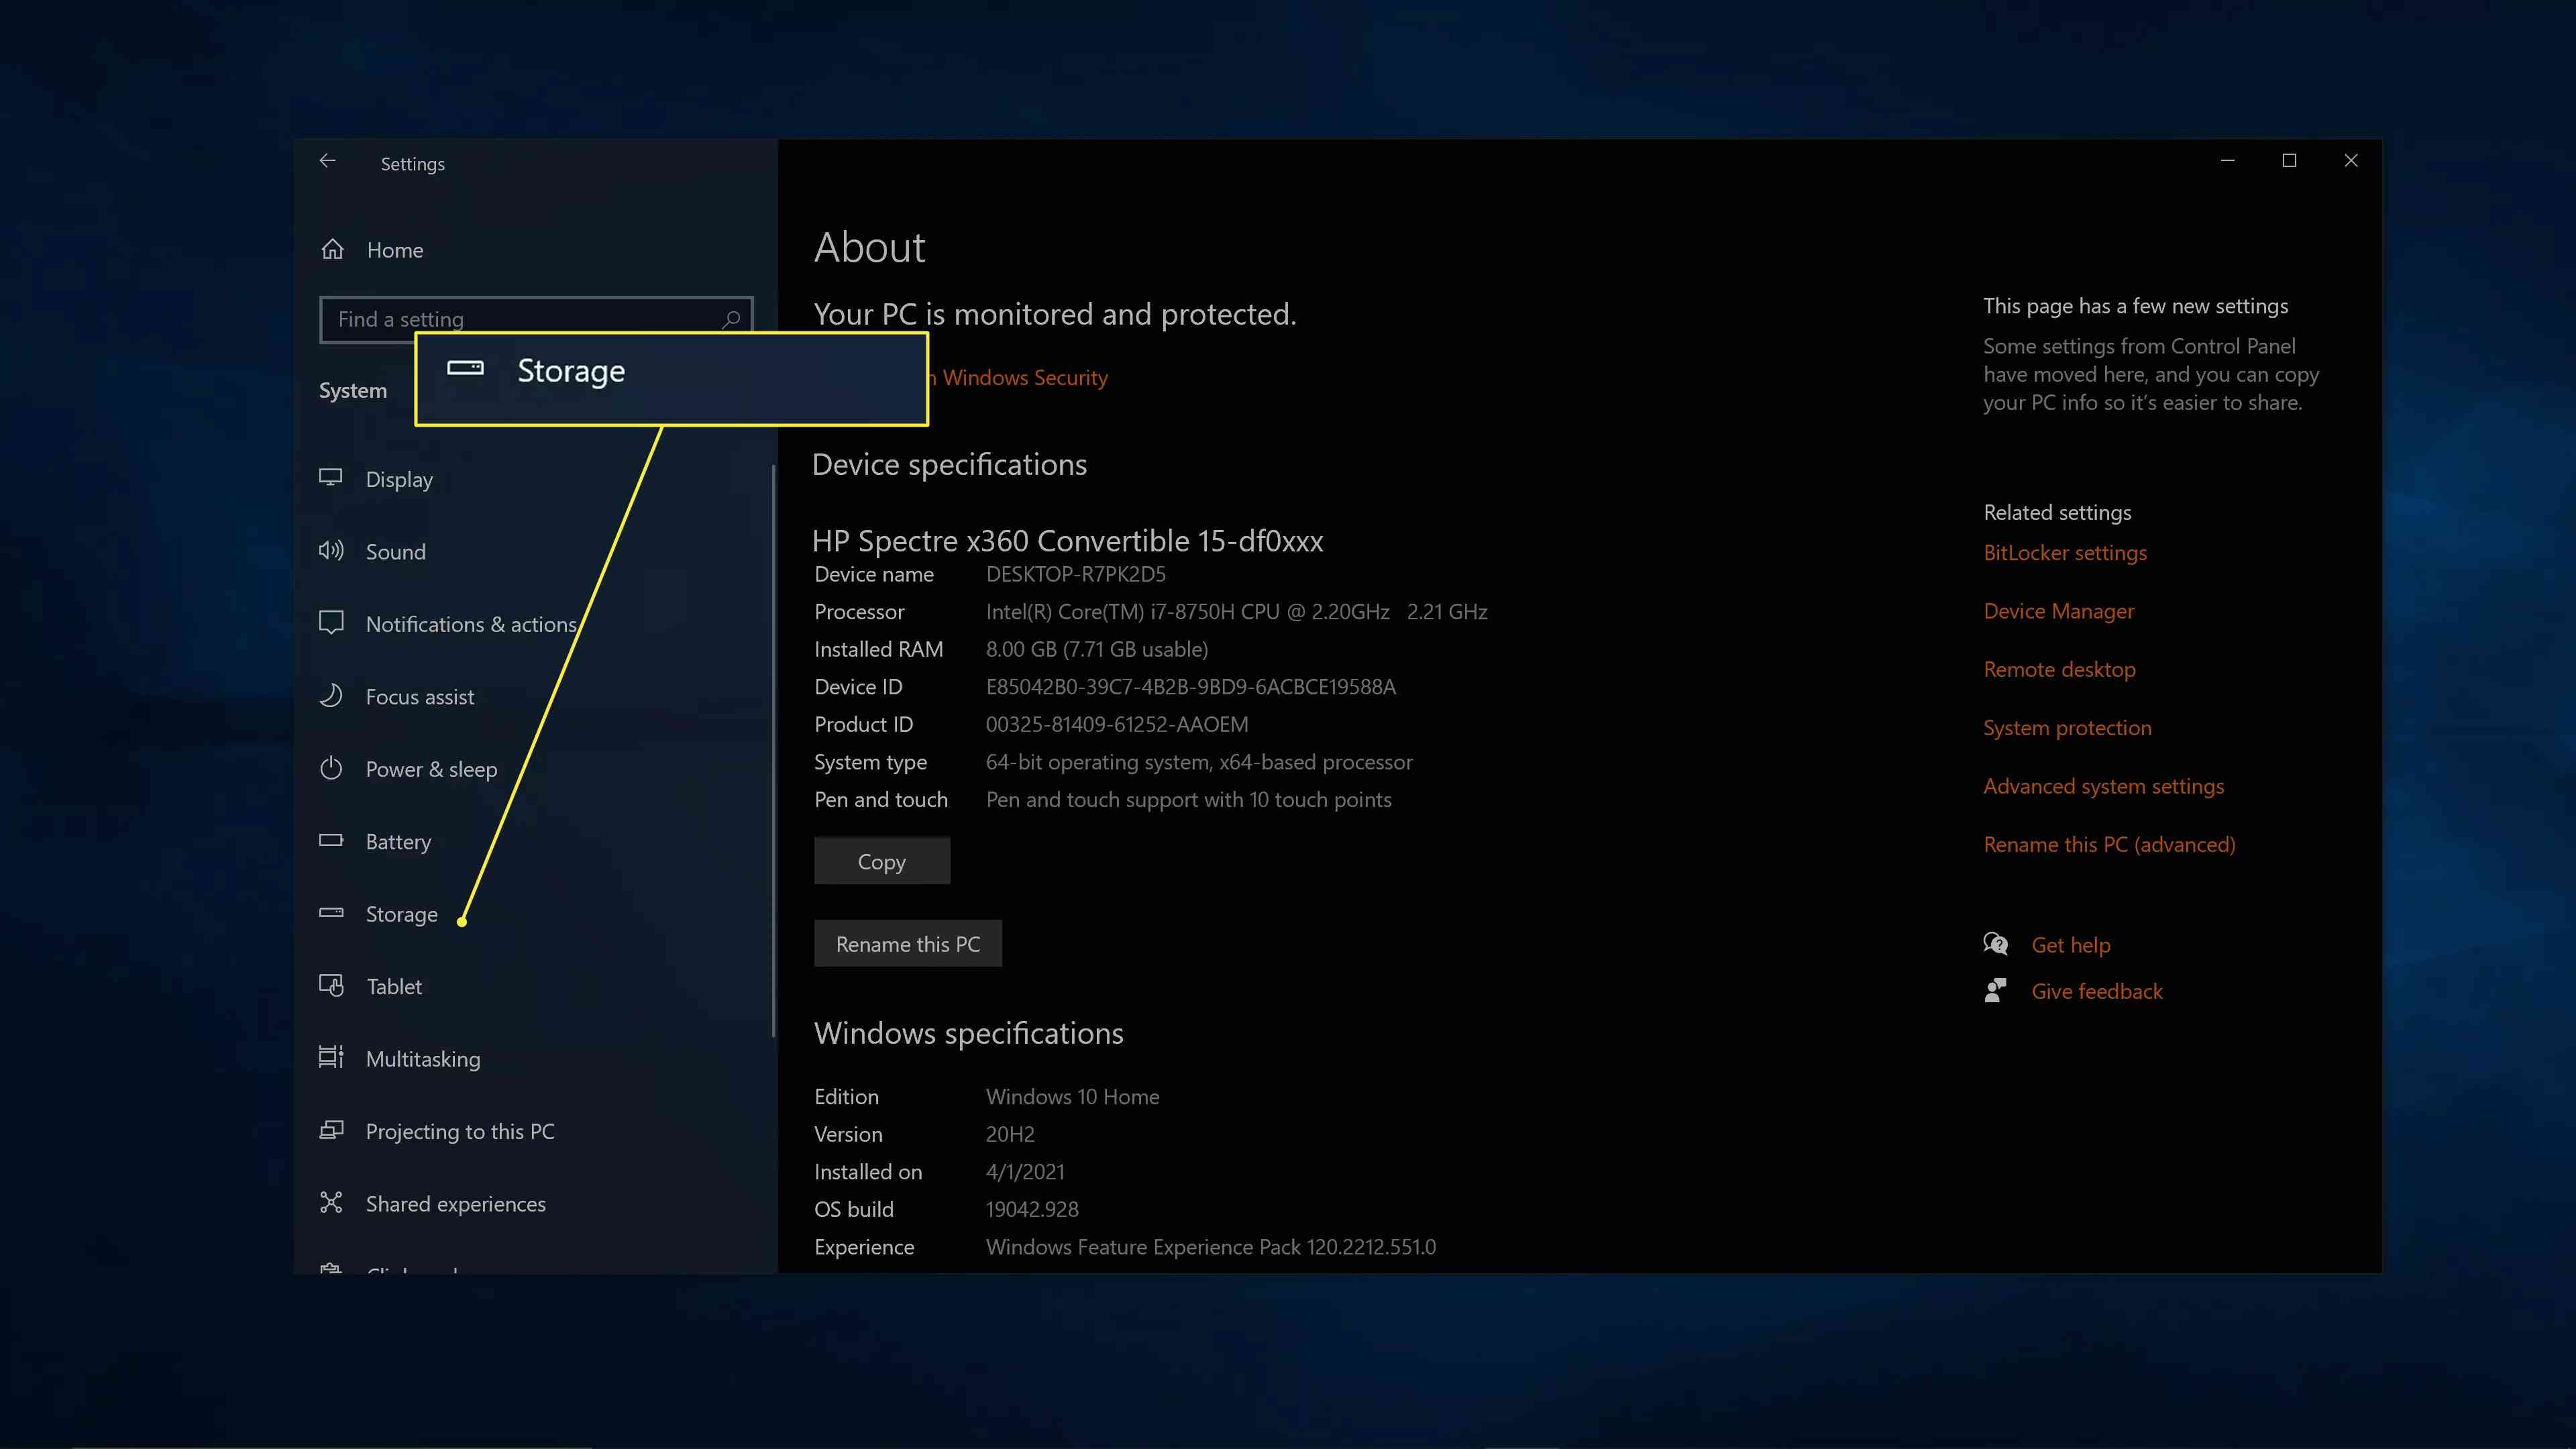 Storage highlighted in the left menu of Windows system settings.